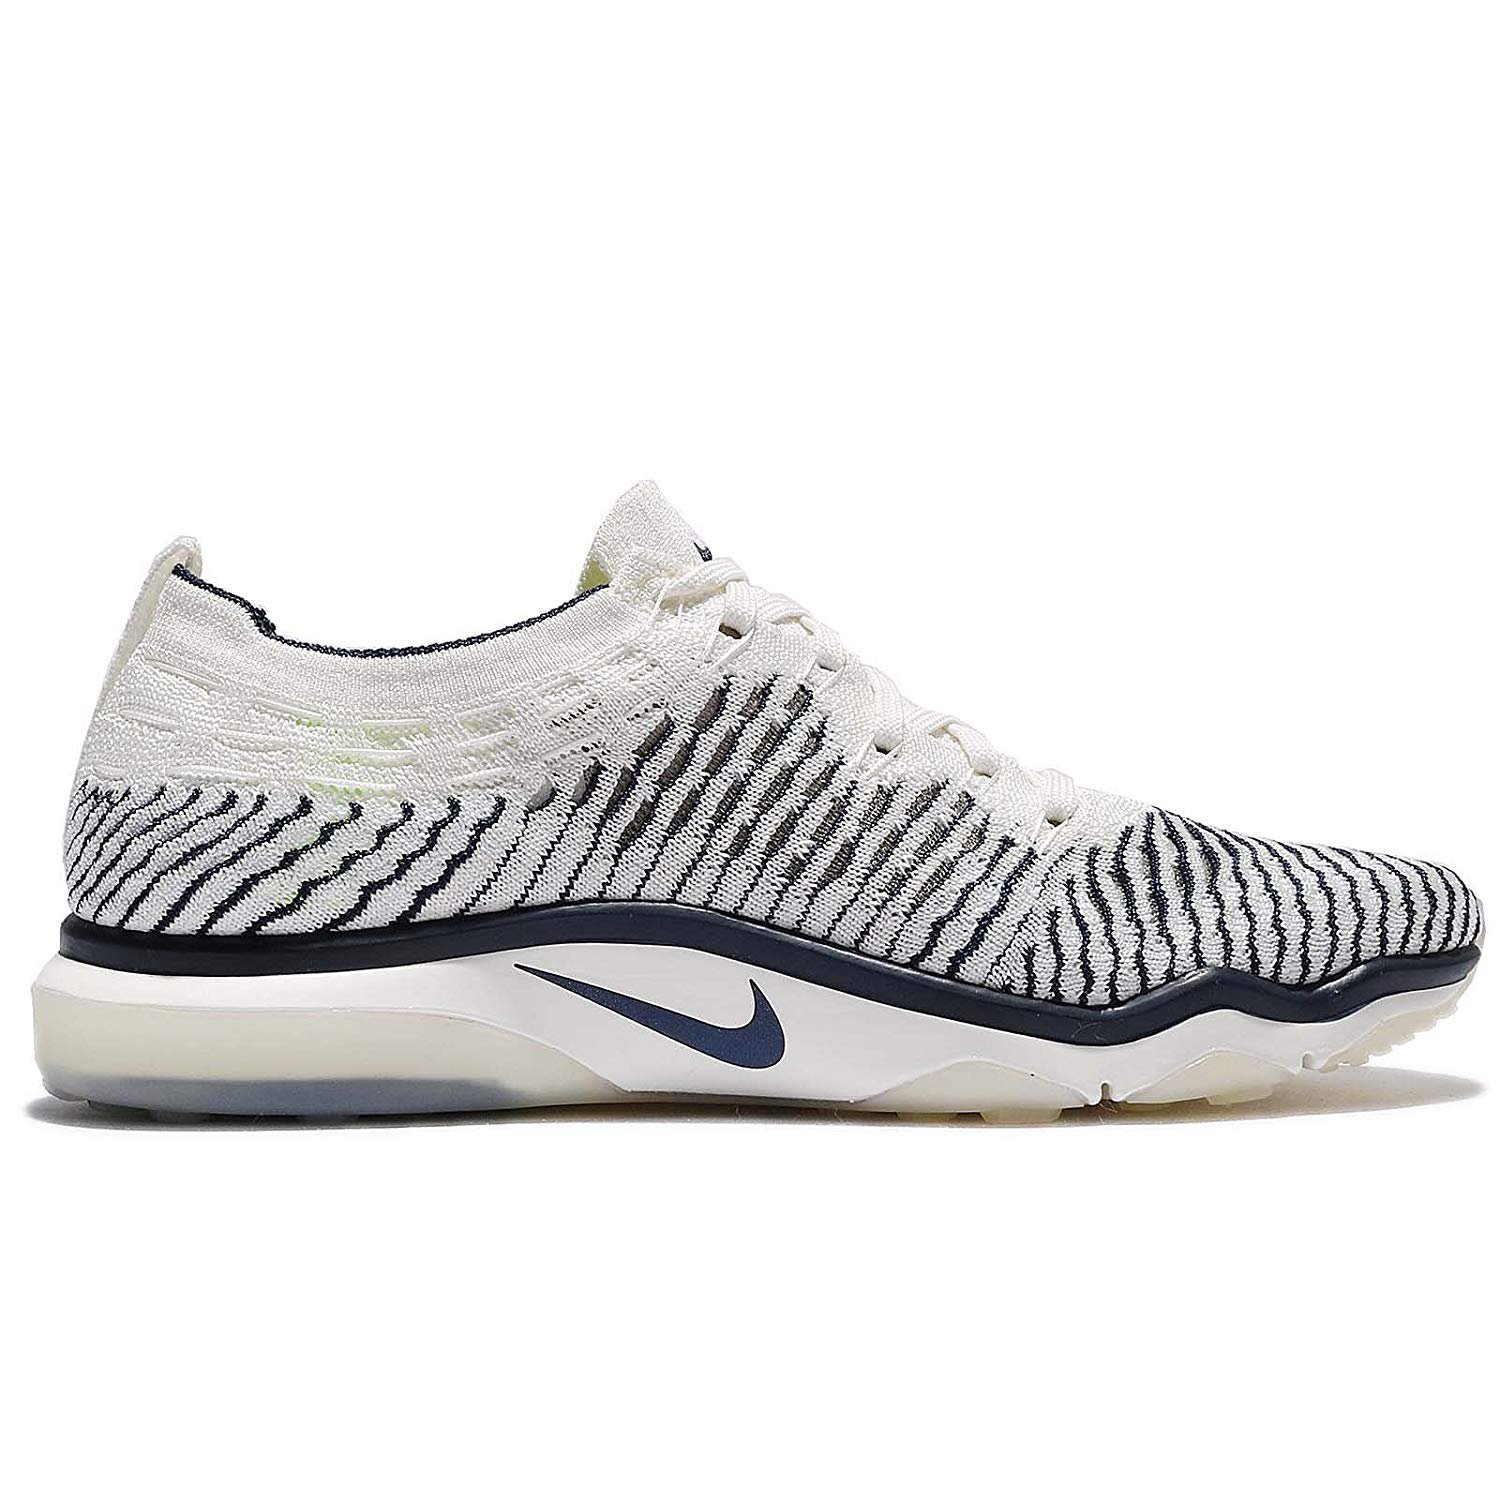 the best attitude 30069 1b281 Nike Zoom Structure Triax+ 14 Running Shoes White